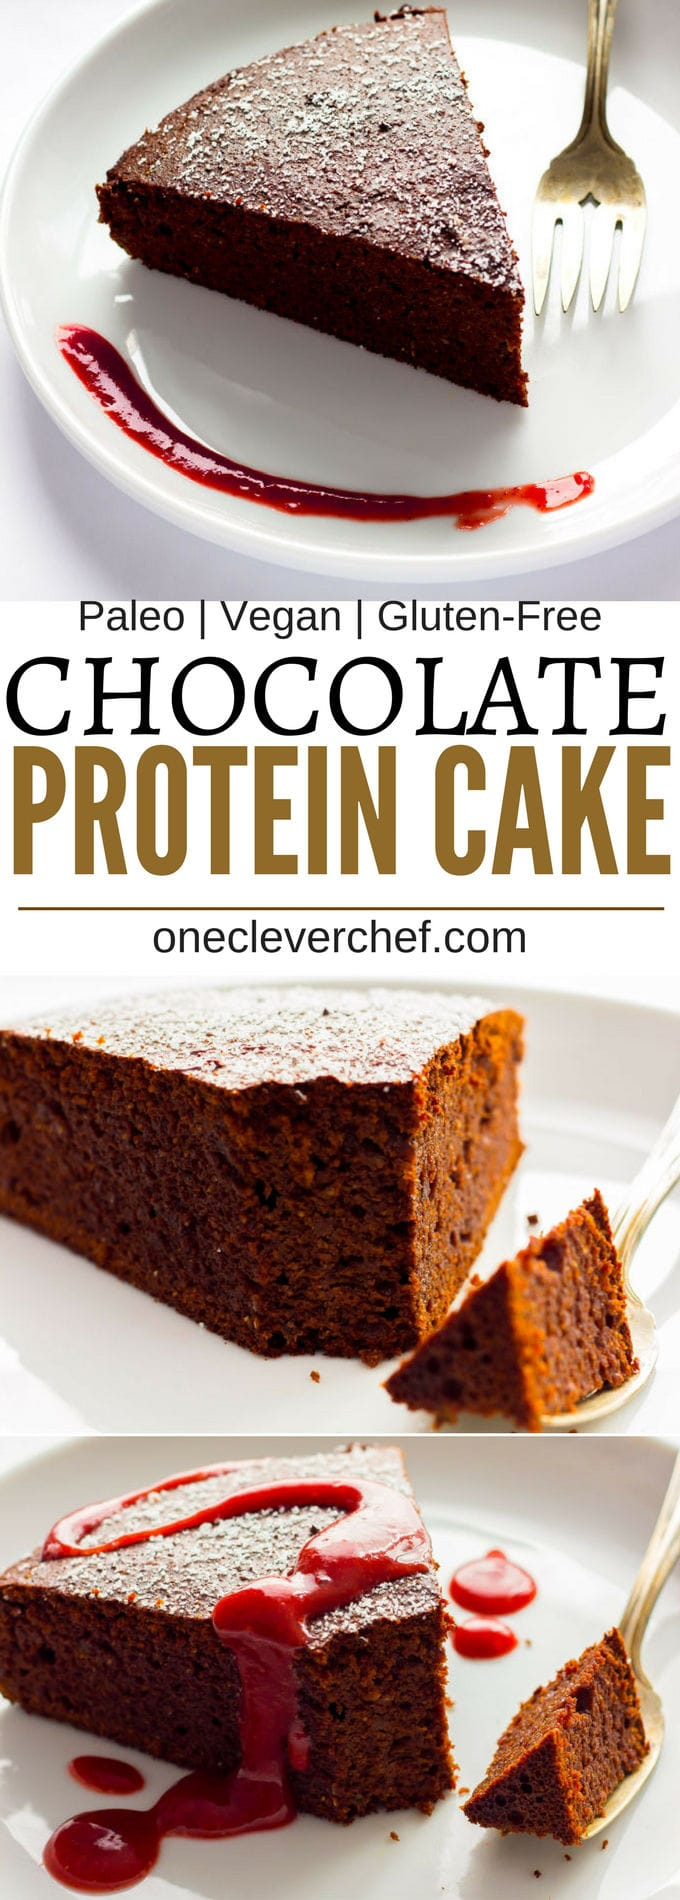 This chocolate flavored vegan mud cake is dense, fudgy, rich and so satisfying! Healthy to boot, flourless and refined sugar-free, there is no shame in having a second piece of this guilt-free decadent dessert. With a whopping 14 grams of protein per portion, go ahead and reward yourself after that hard workout with a huge piece, you deserve it! Paleo and Gluten-Free. | www.onecleverchef.com